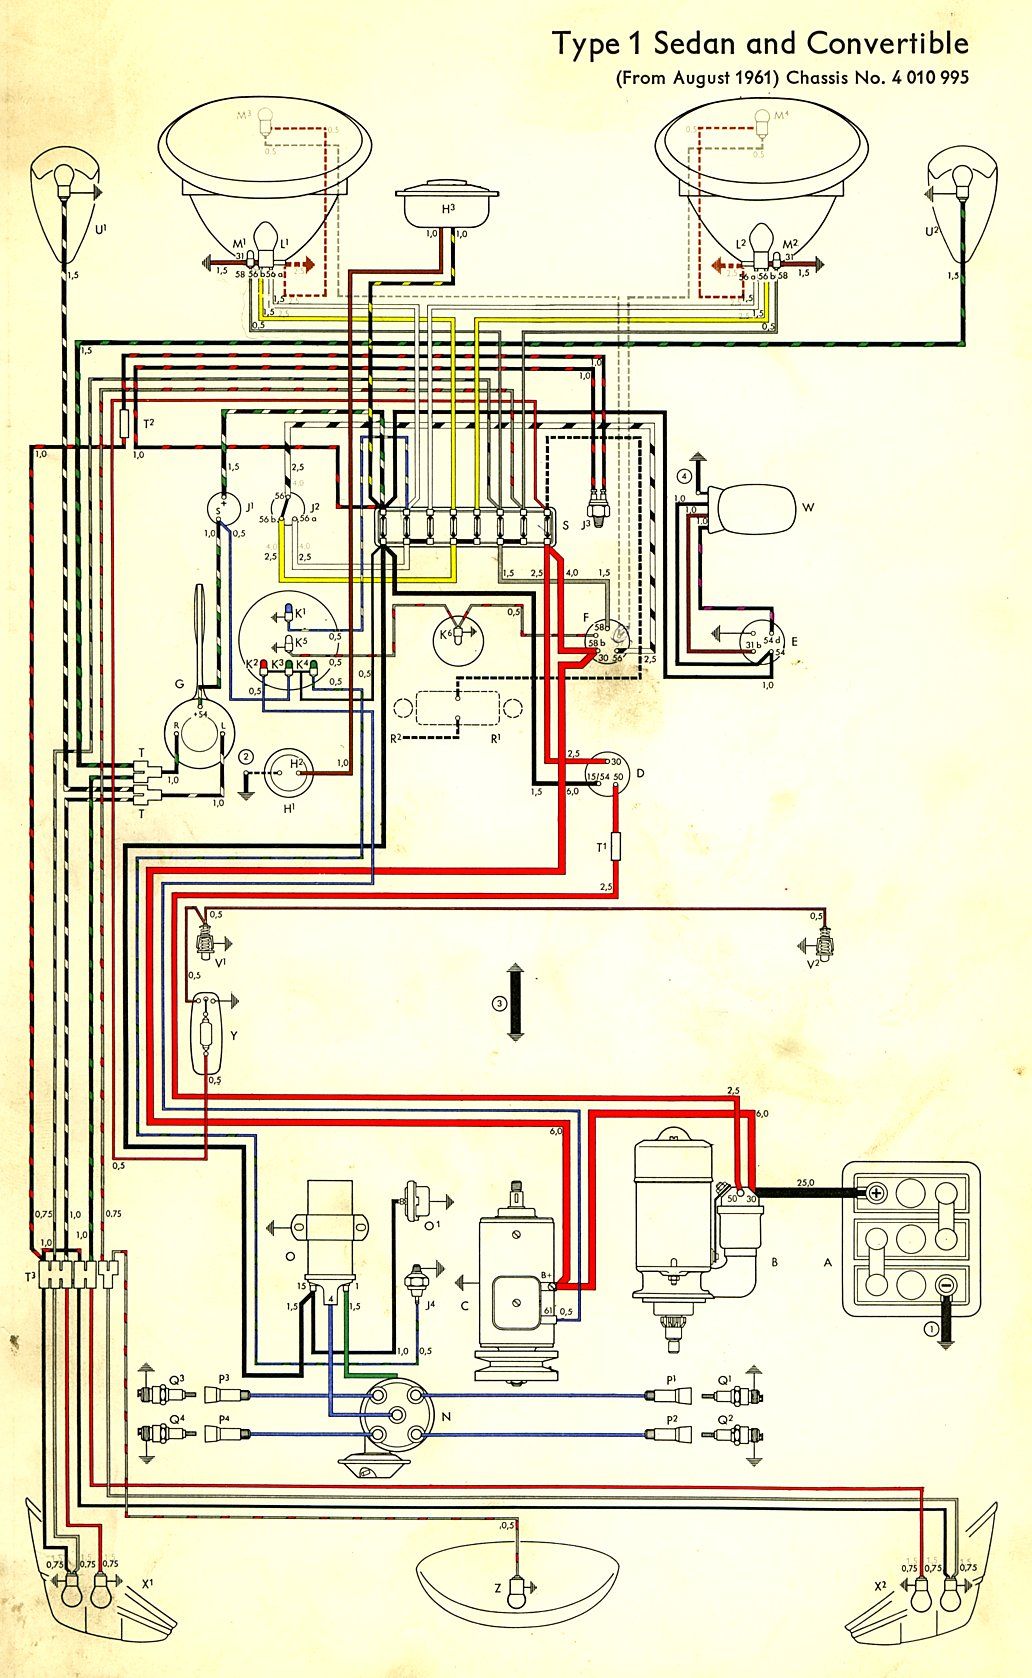 bug_62 1962 beetle wiring diagram thegoldenbug com 1957 vw bug wiring diagram at soozxer.org